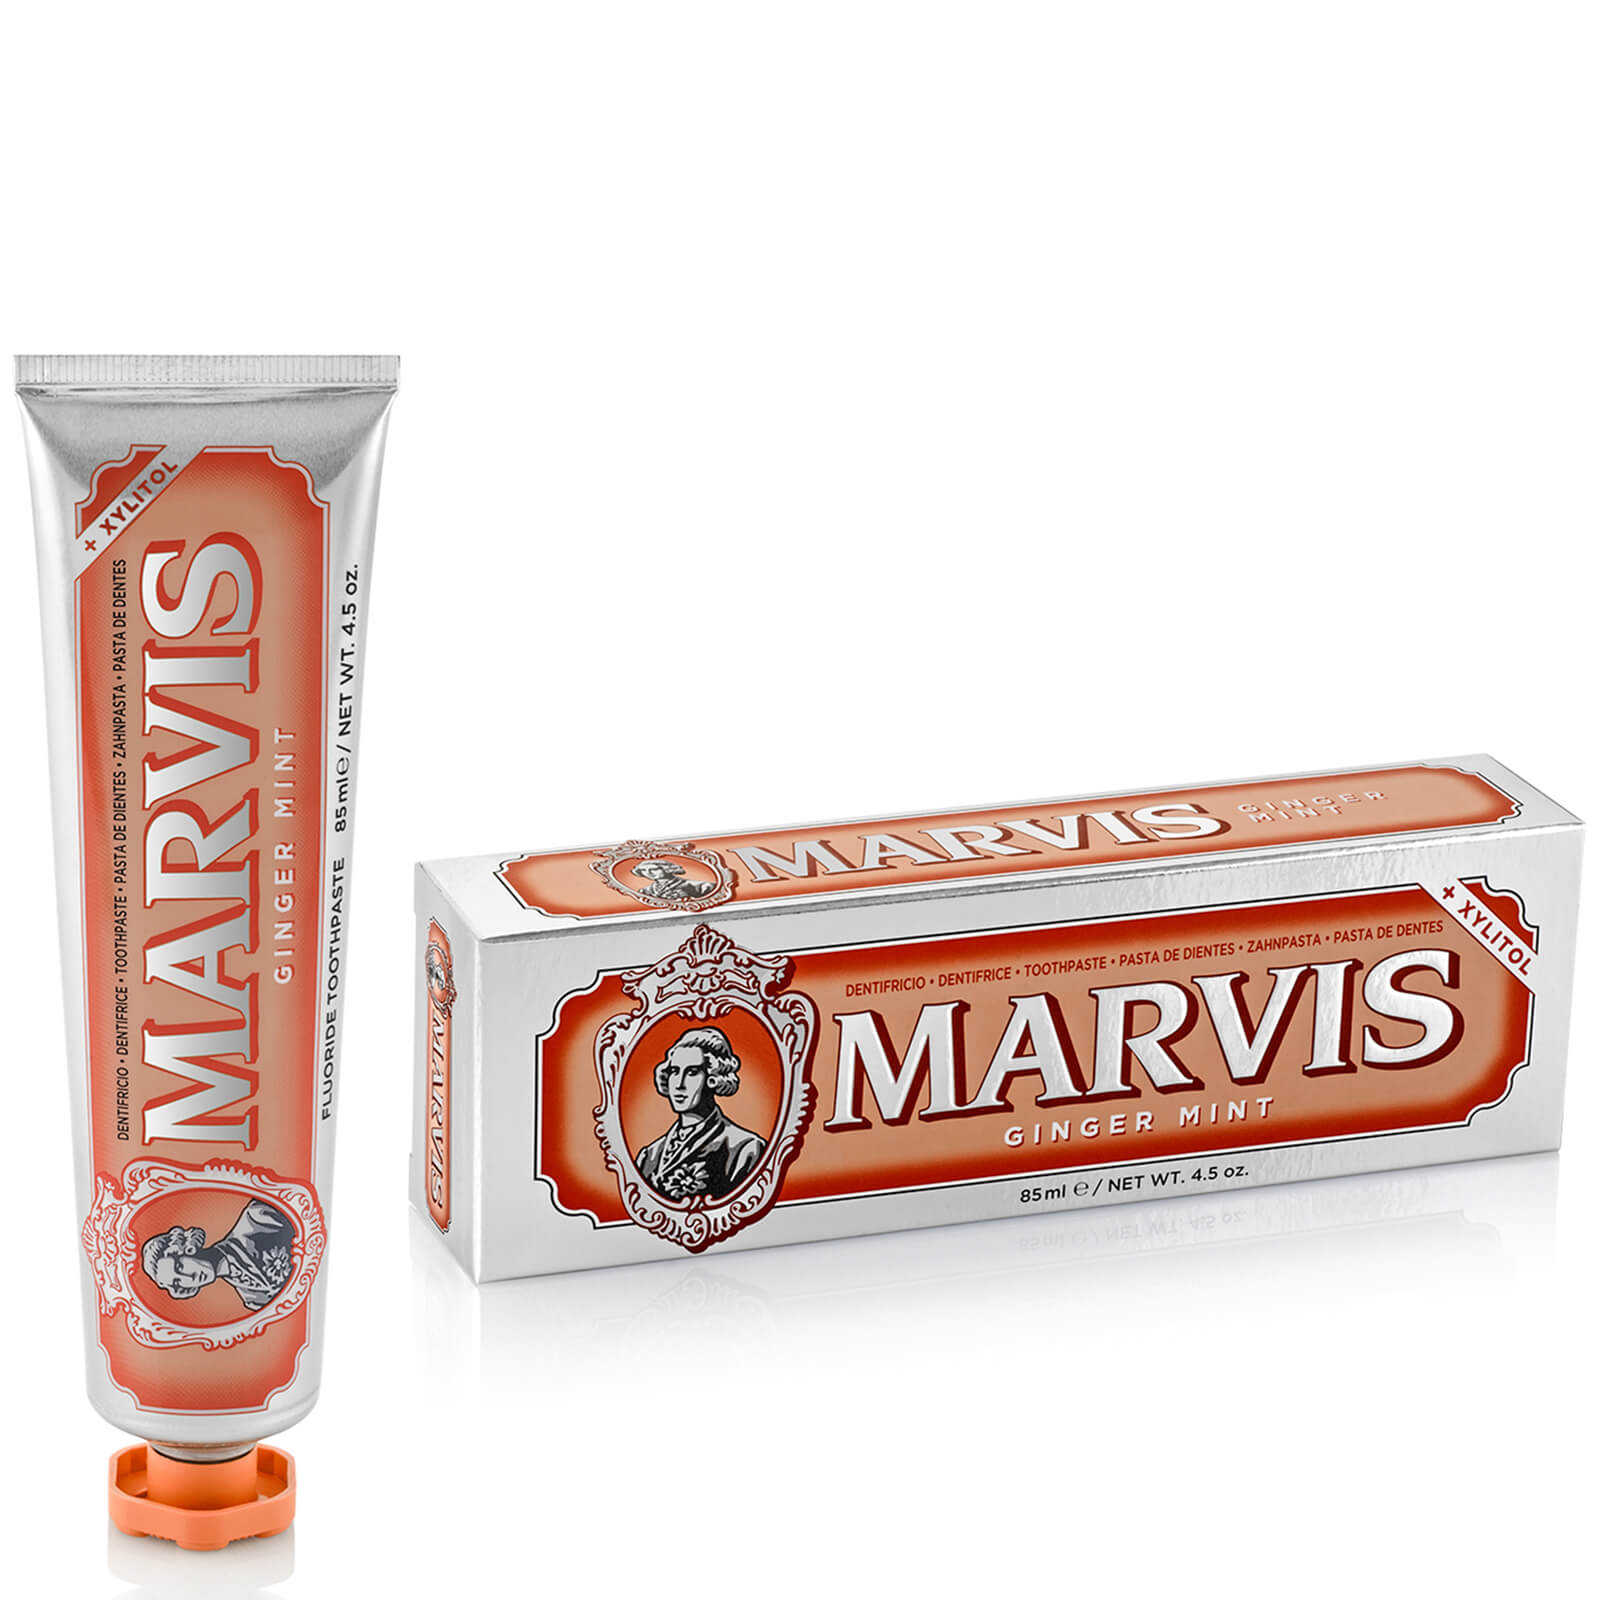 Marvis Ginger Mint Toothpaste 85ml Beautyexpert Iron Man Repulsor Fx Circuit V24 Light Sound Effects For Your